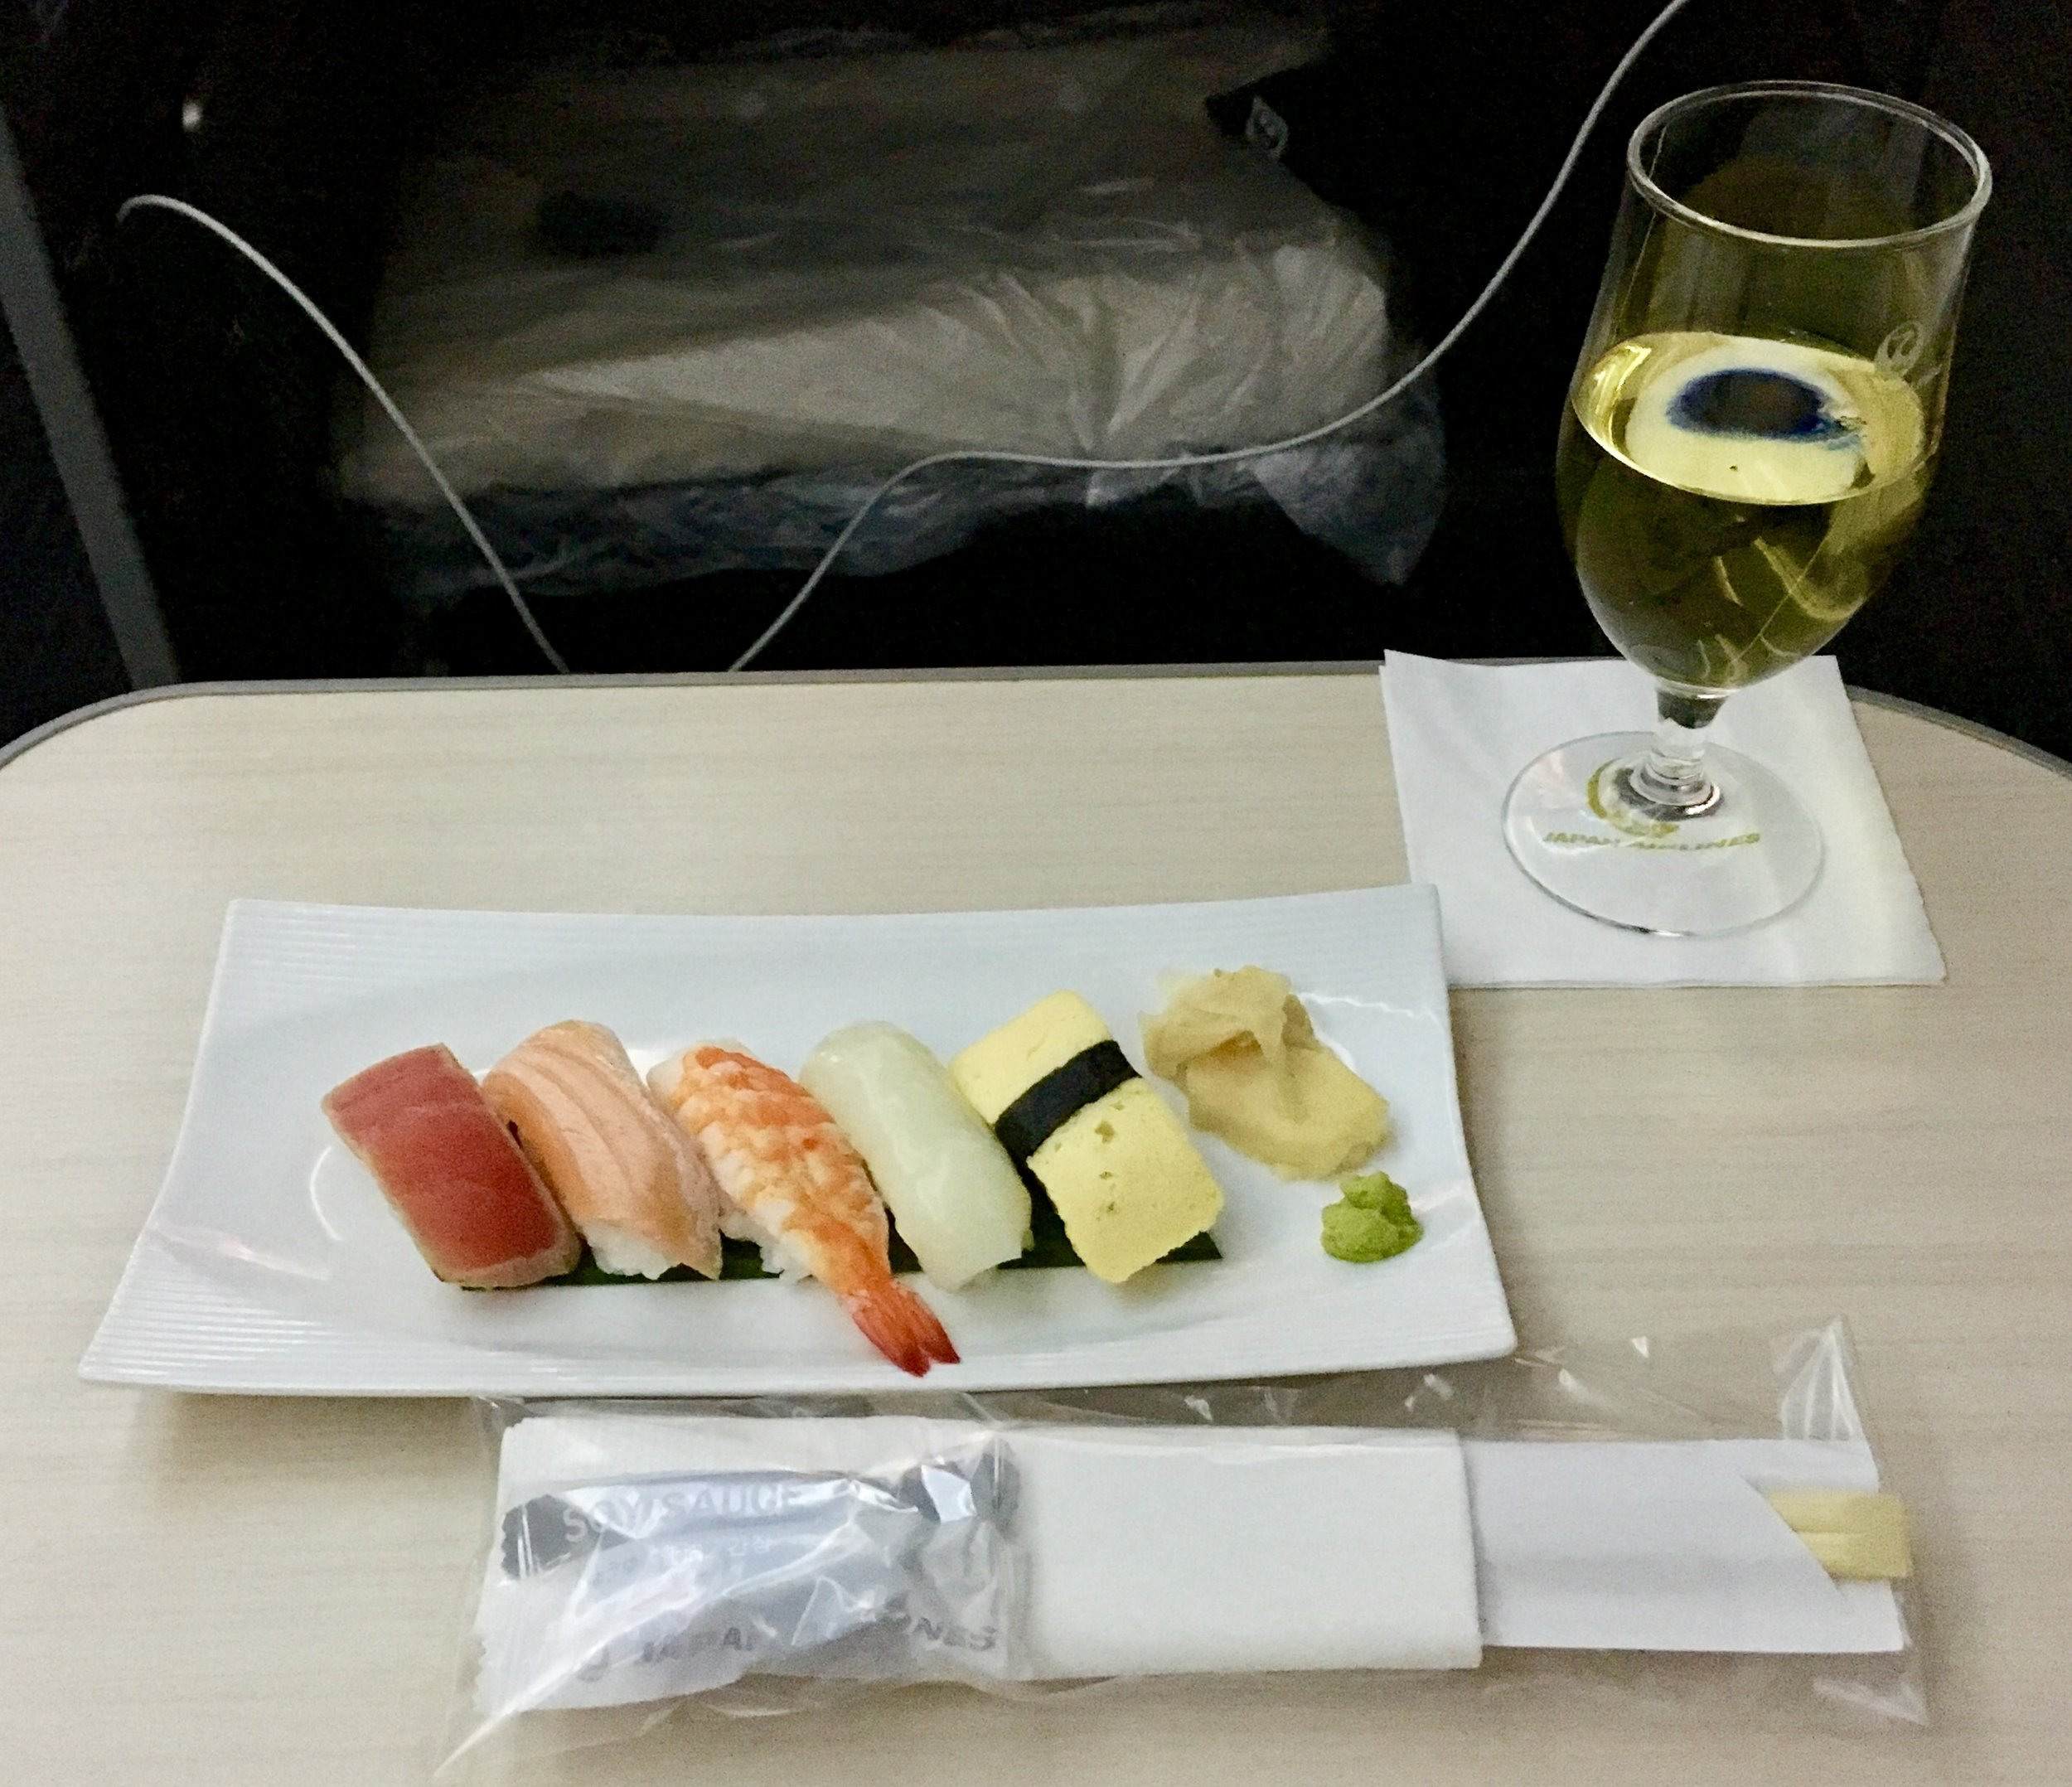 Sushi and/or nuts was served about 30 minutes after take-off, the full extent of any food offered on the flight before breakfast. I maximized what I could with the addition of some okay Charles Heidsieck champagne.